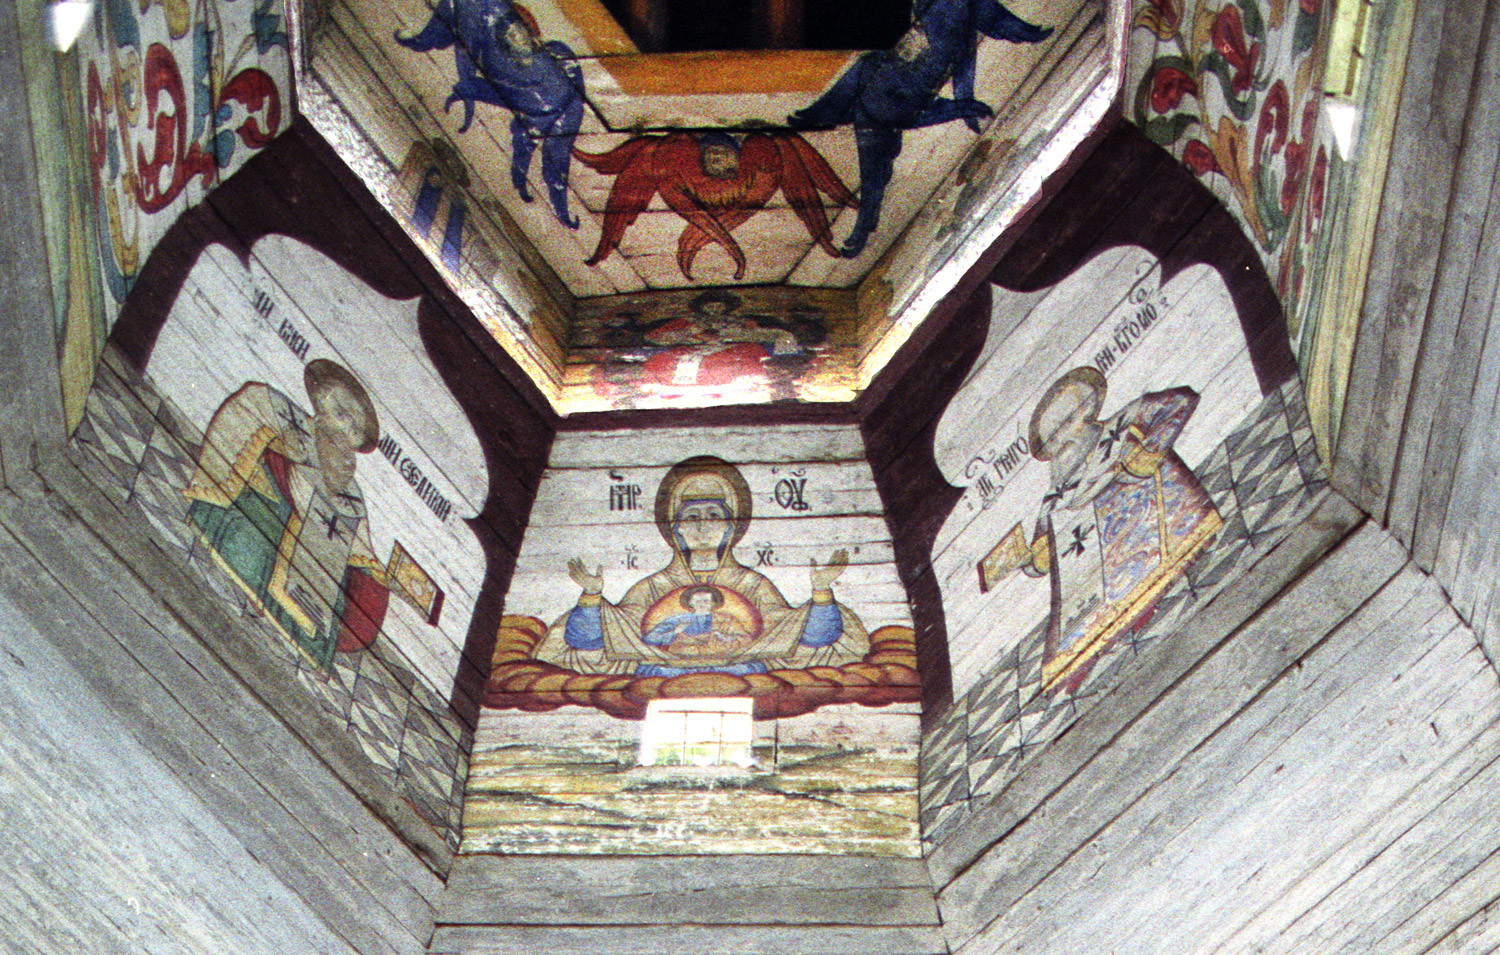 Church of the Tikhvin Icon of the Virgin (Old Church of the Ascension). View of paintings on east wall of upper tier. From left: St. Basil the Great, Virgin Mary of the Sign, St. Gregory the Theologian. Aug. 19, 2006.